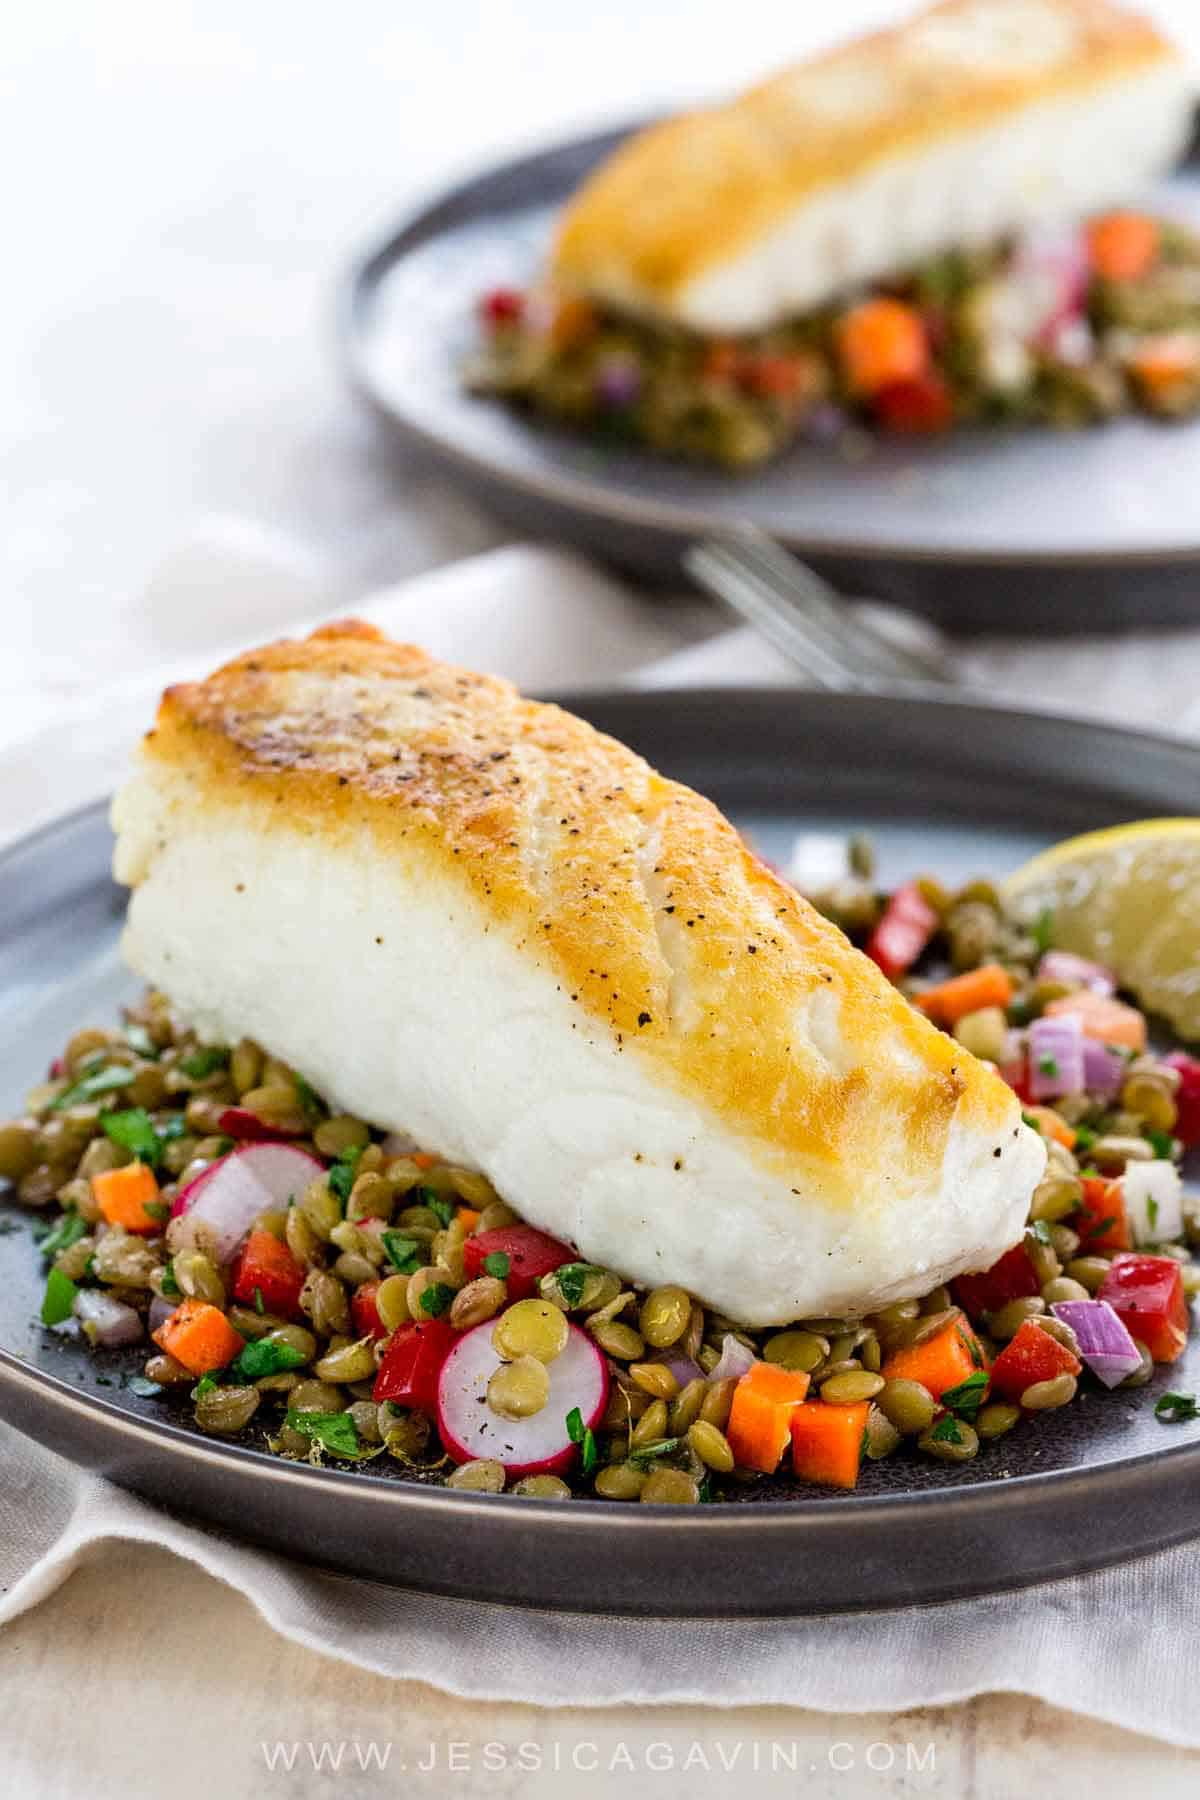 Pan-roasted halibut with a golden sear and served with a white wine braised lentil vegetable salad that is tossed with a lemon basil dressing. #halibut #datenight #fish #cooking